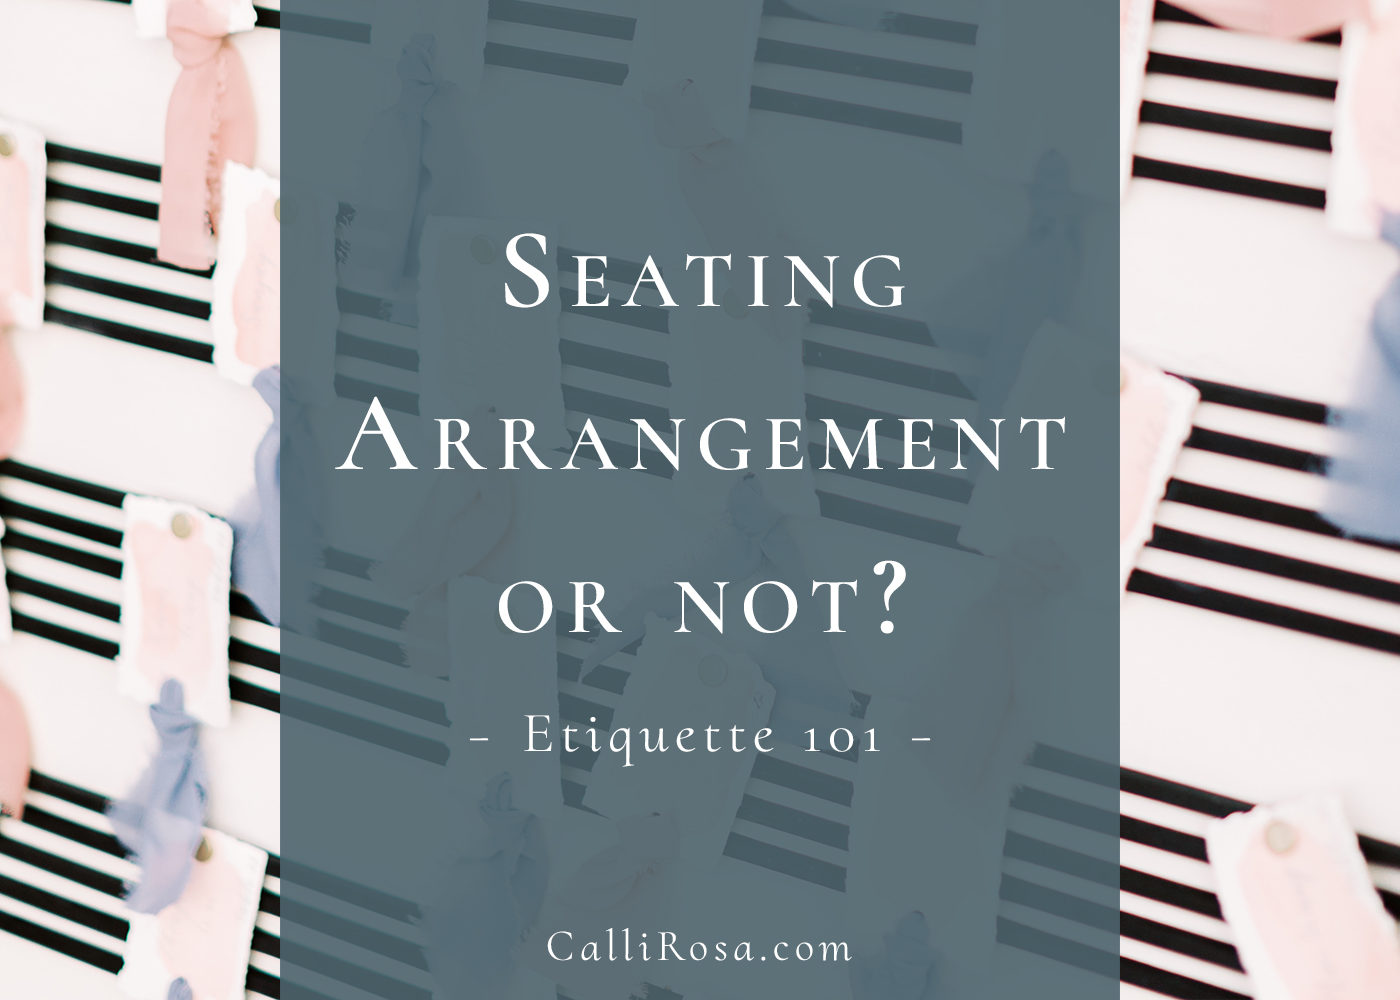 Seating Arrangement Etiquette 101 blog featured image